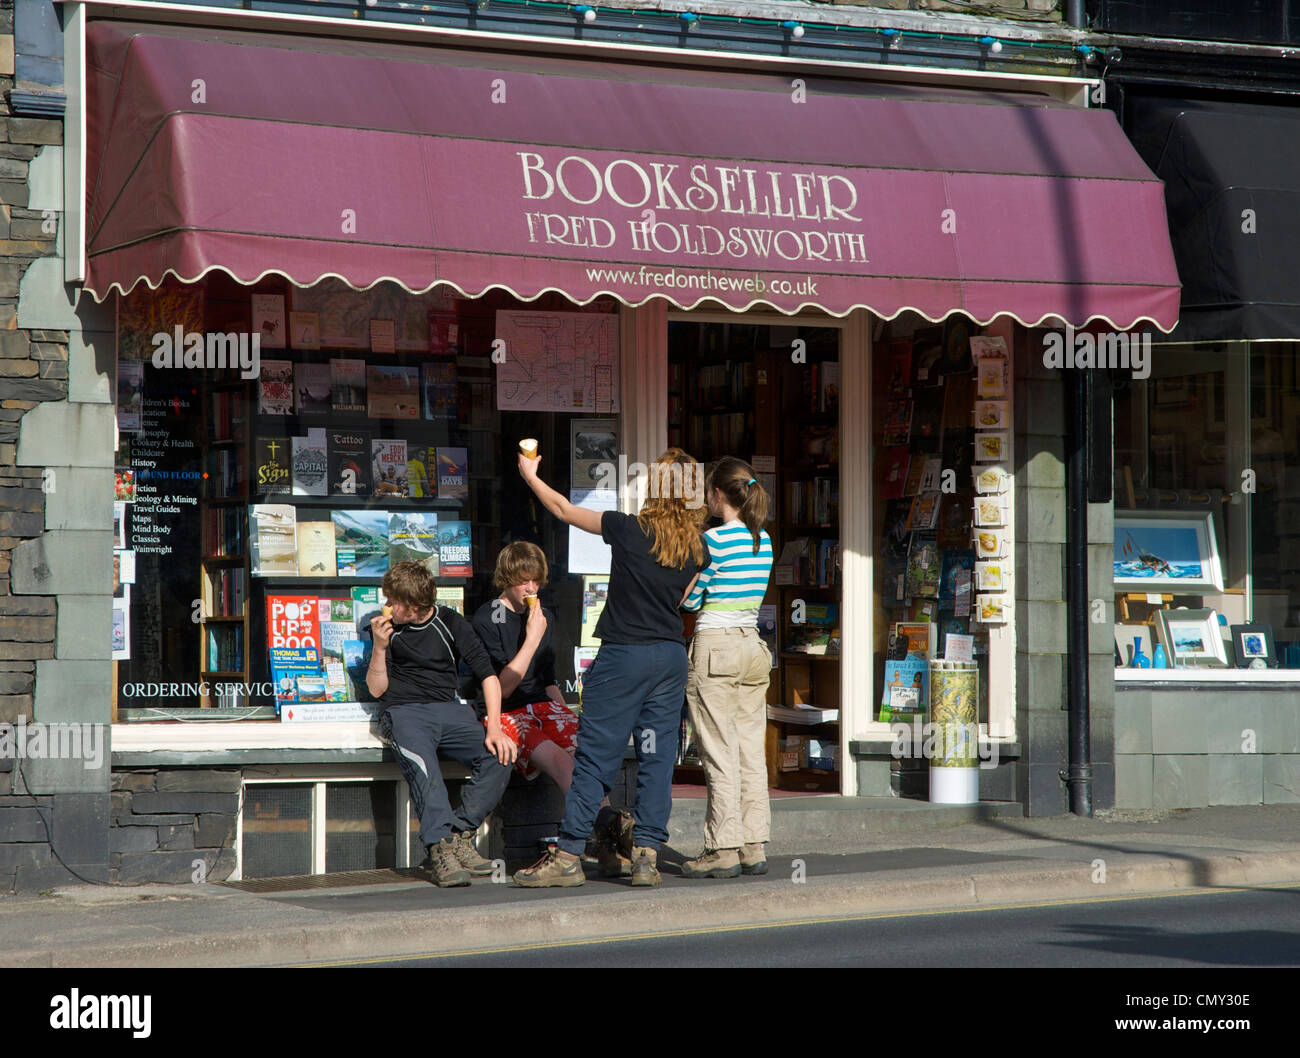 Four young people outside a bookshop, eating ice creams, in the town of Ambleside, Cumbria, England UK - Stock Image